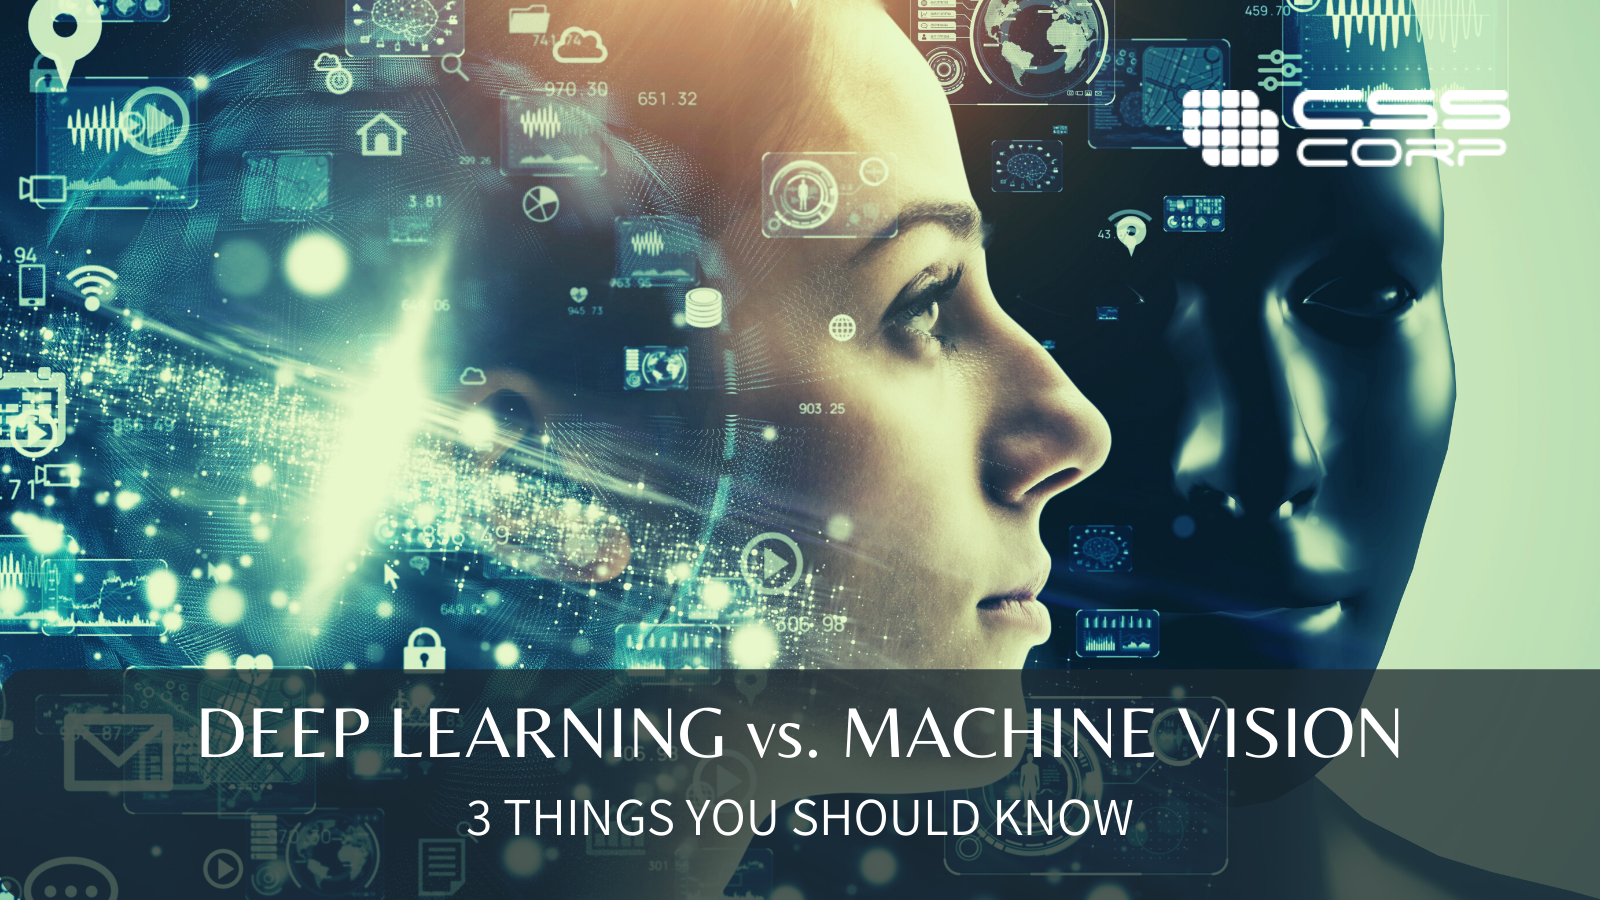 Deep Learning vs. Machine Vision - 3 things you should know